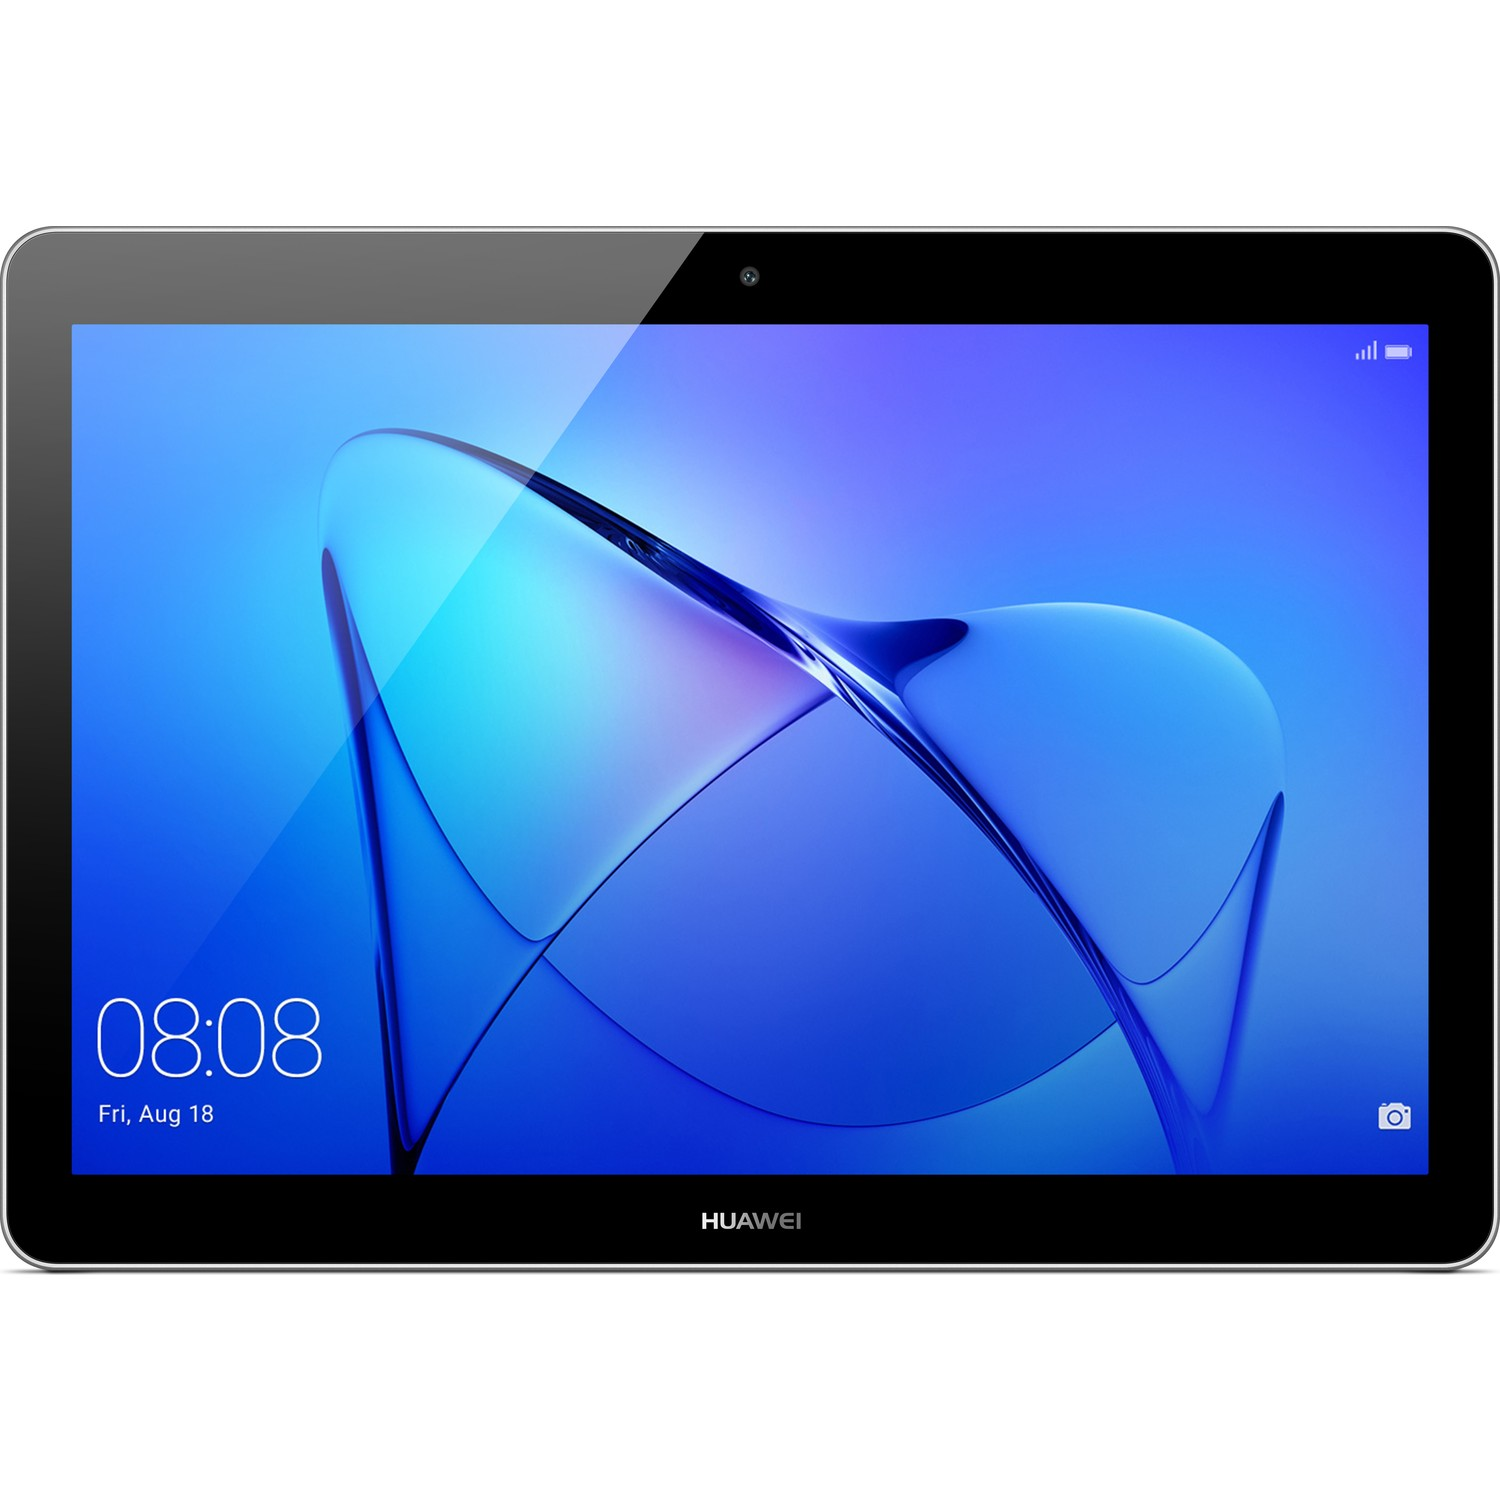 "HUAWEI T3 10 AGASSI W09 MSM 8917 A53 2GB DDR3 32 GB WIFI 10"" 1280x800 IPS HD GRI ANDROID 7.0 NOUGAT"